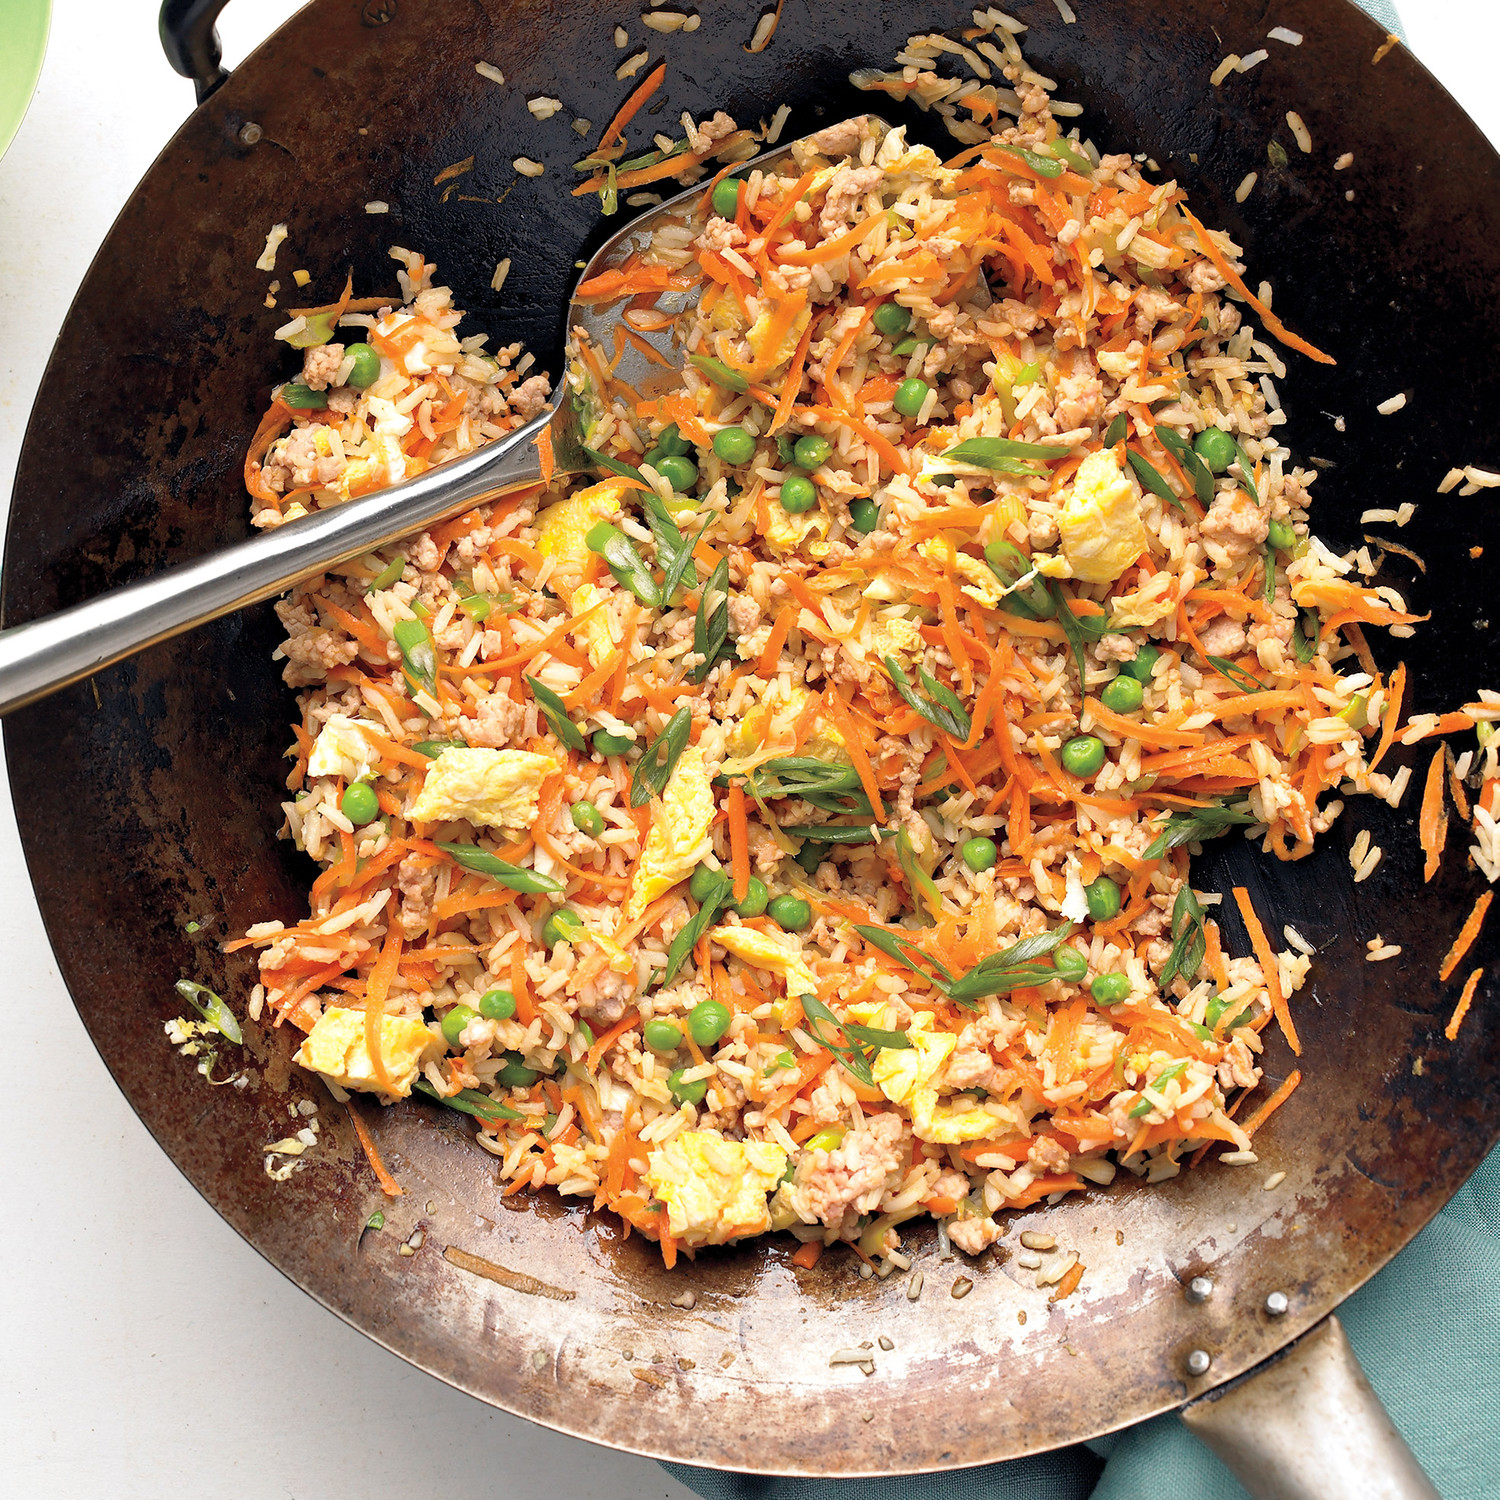 Pork fried rice recipe video martha stewart forumfinder